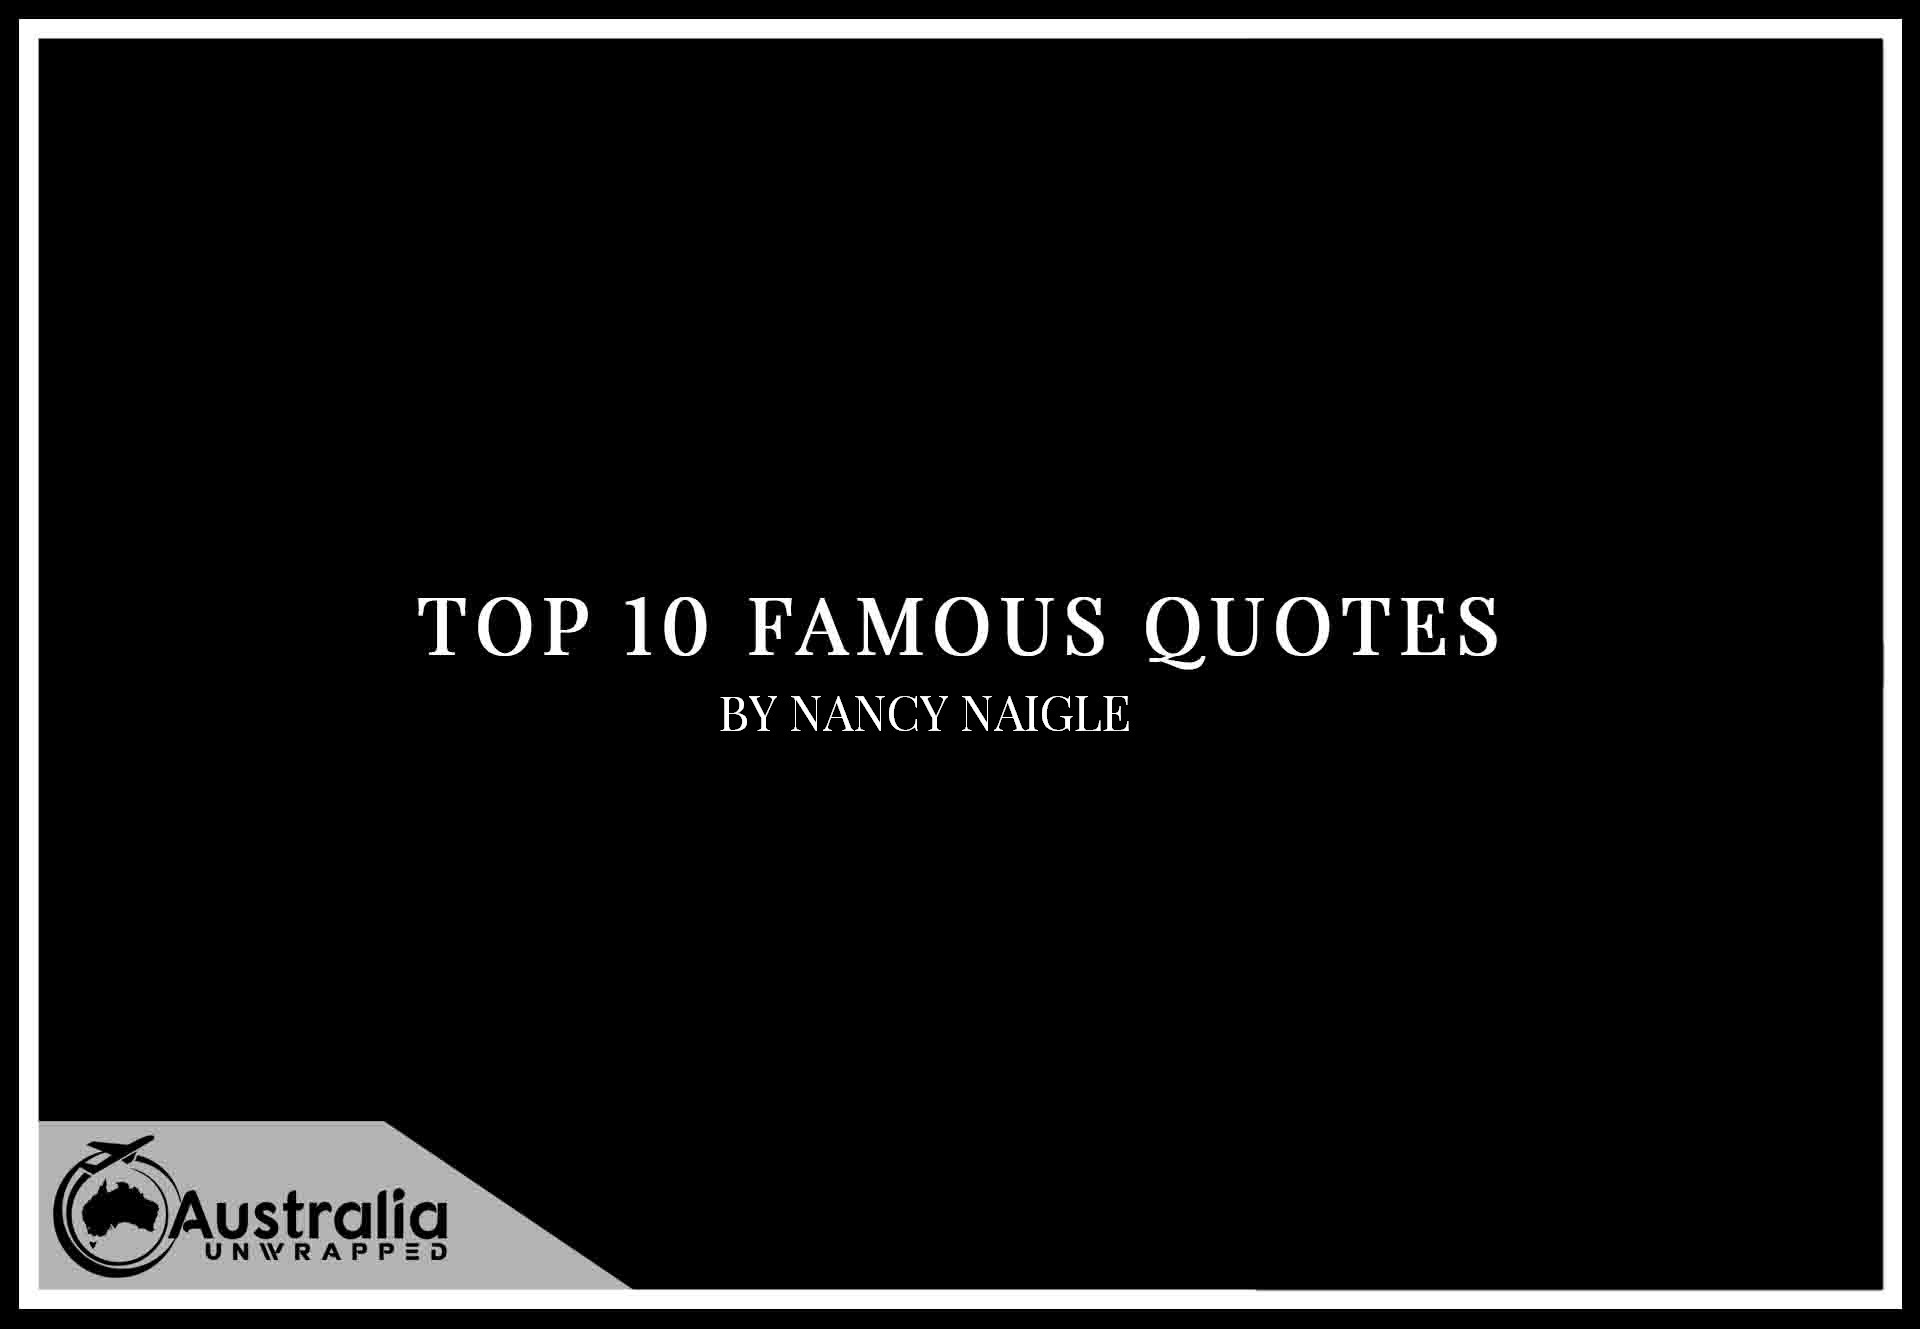 Top 10 Famous Quotes by Author Nancy Naigle